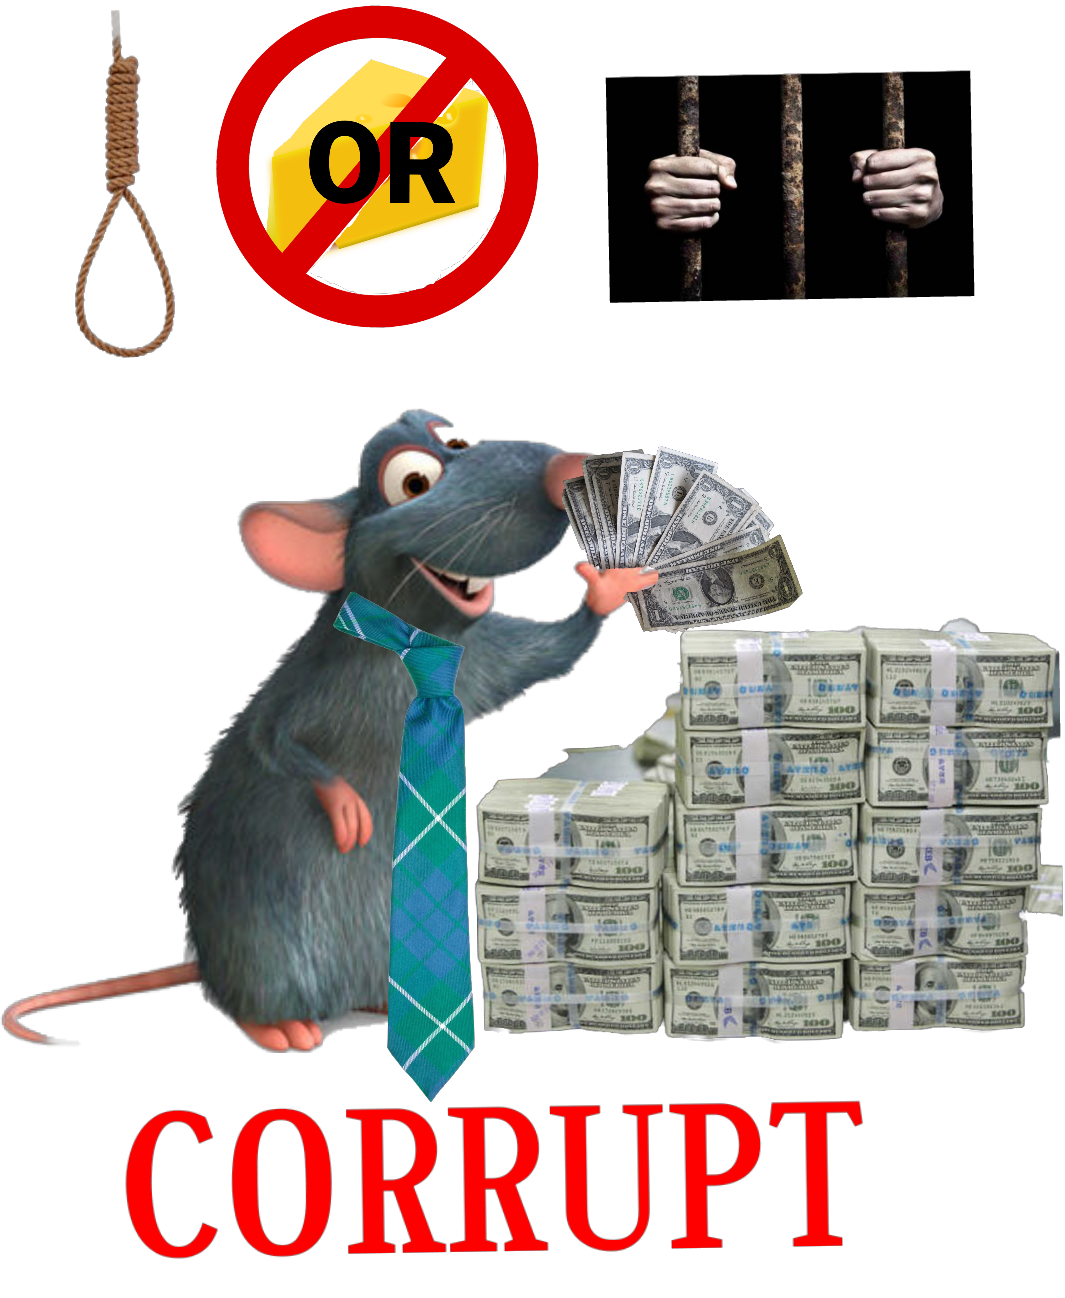 Clipart rat cheese. Mouse tie not fond